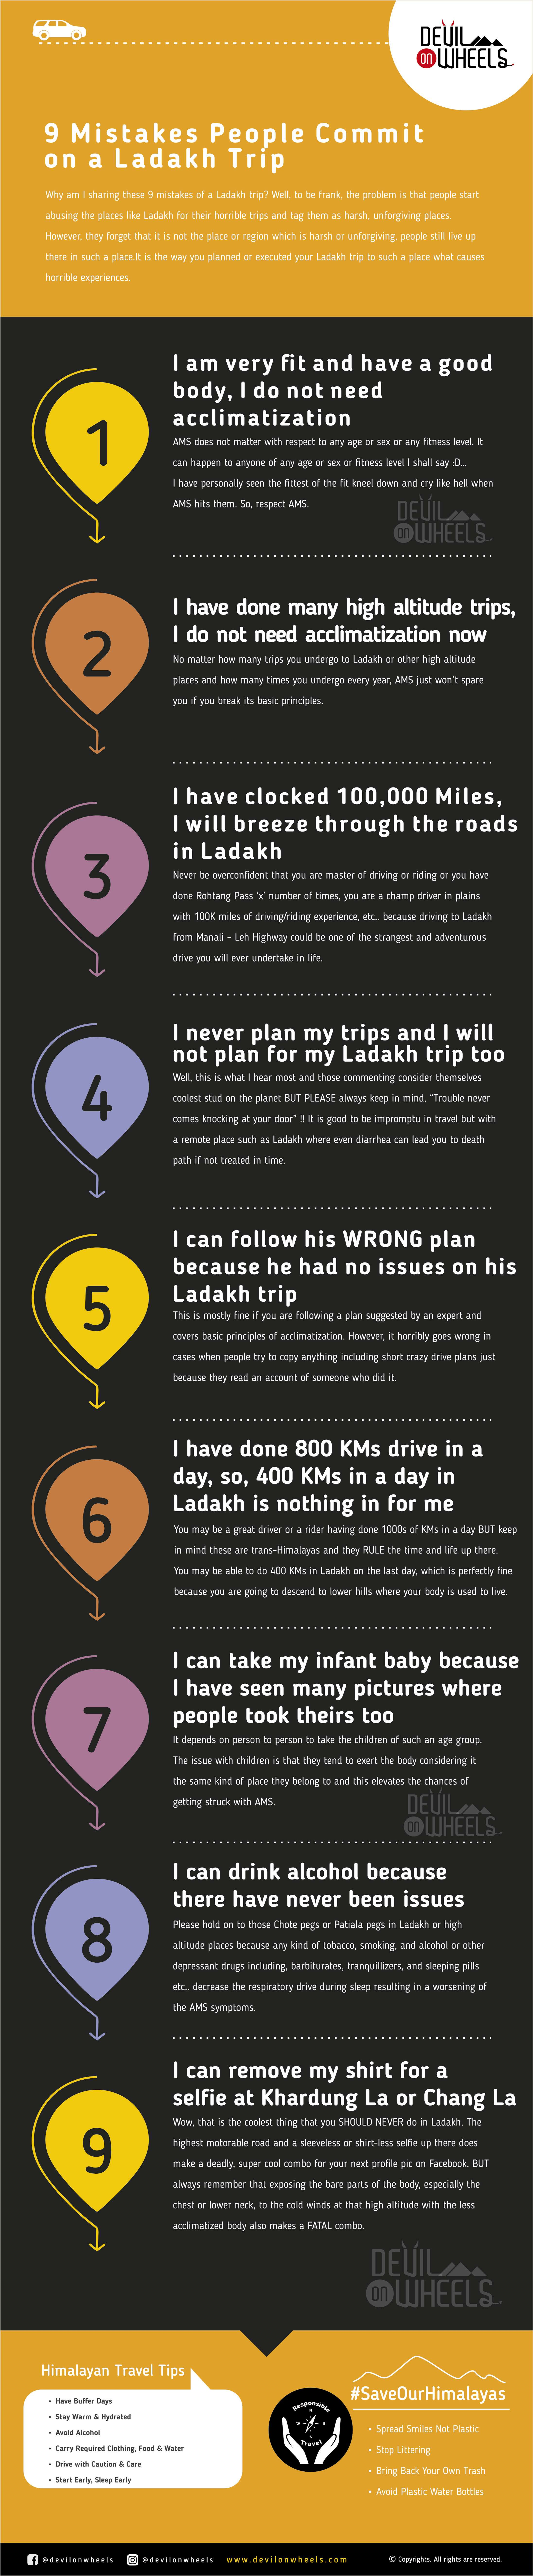 Mistakes people commit on a Ladakh trip